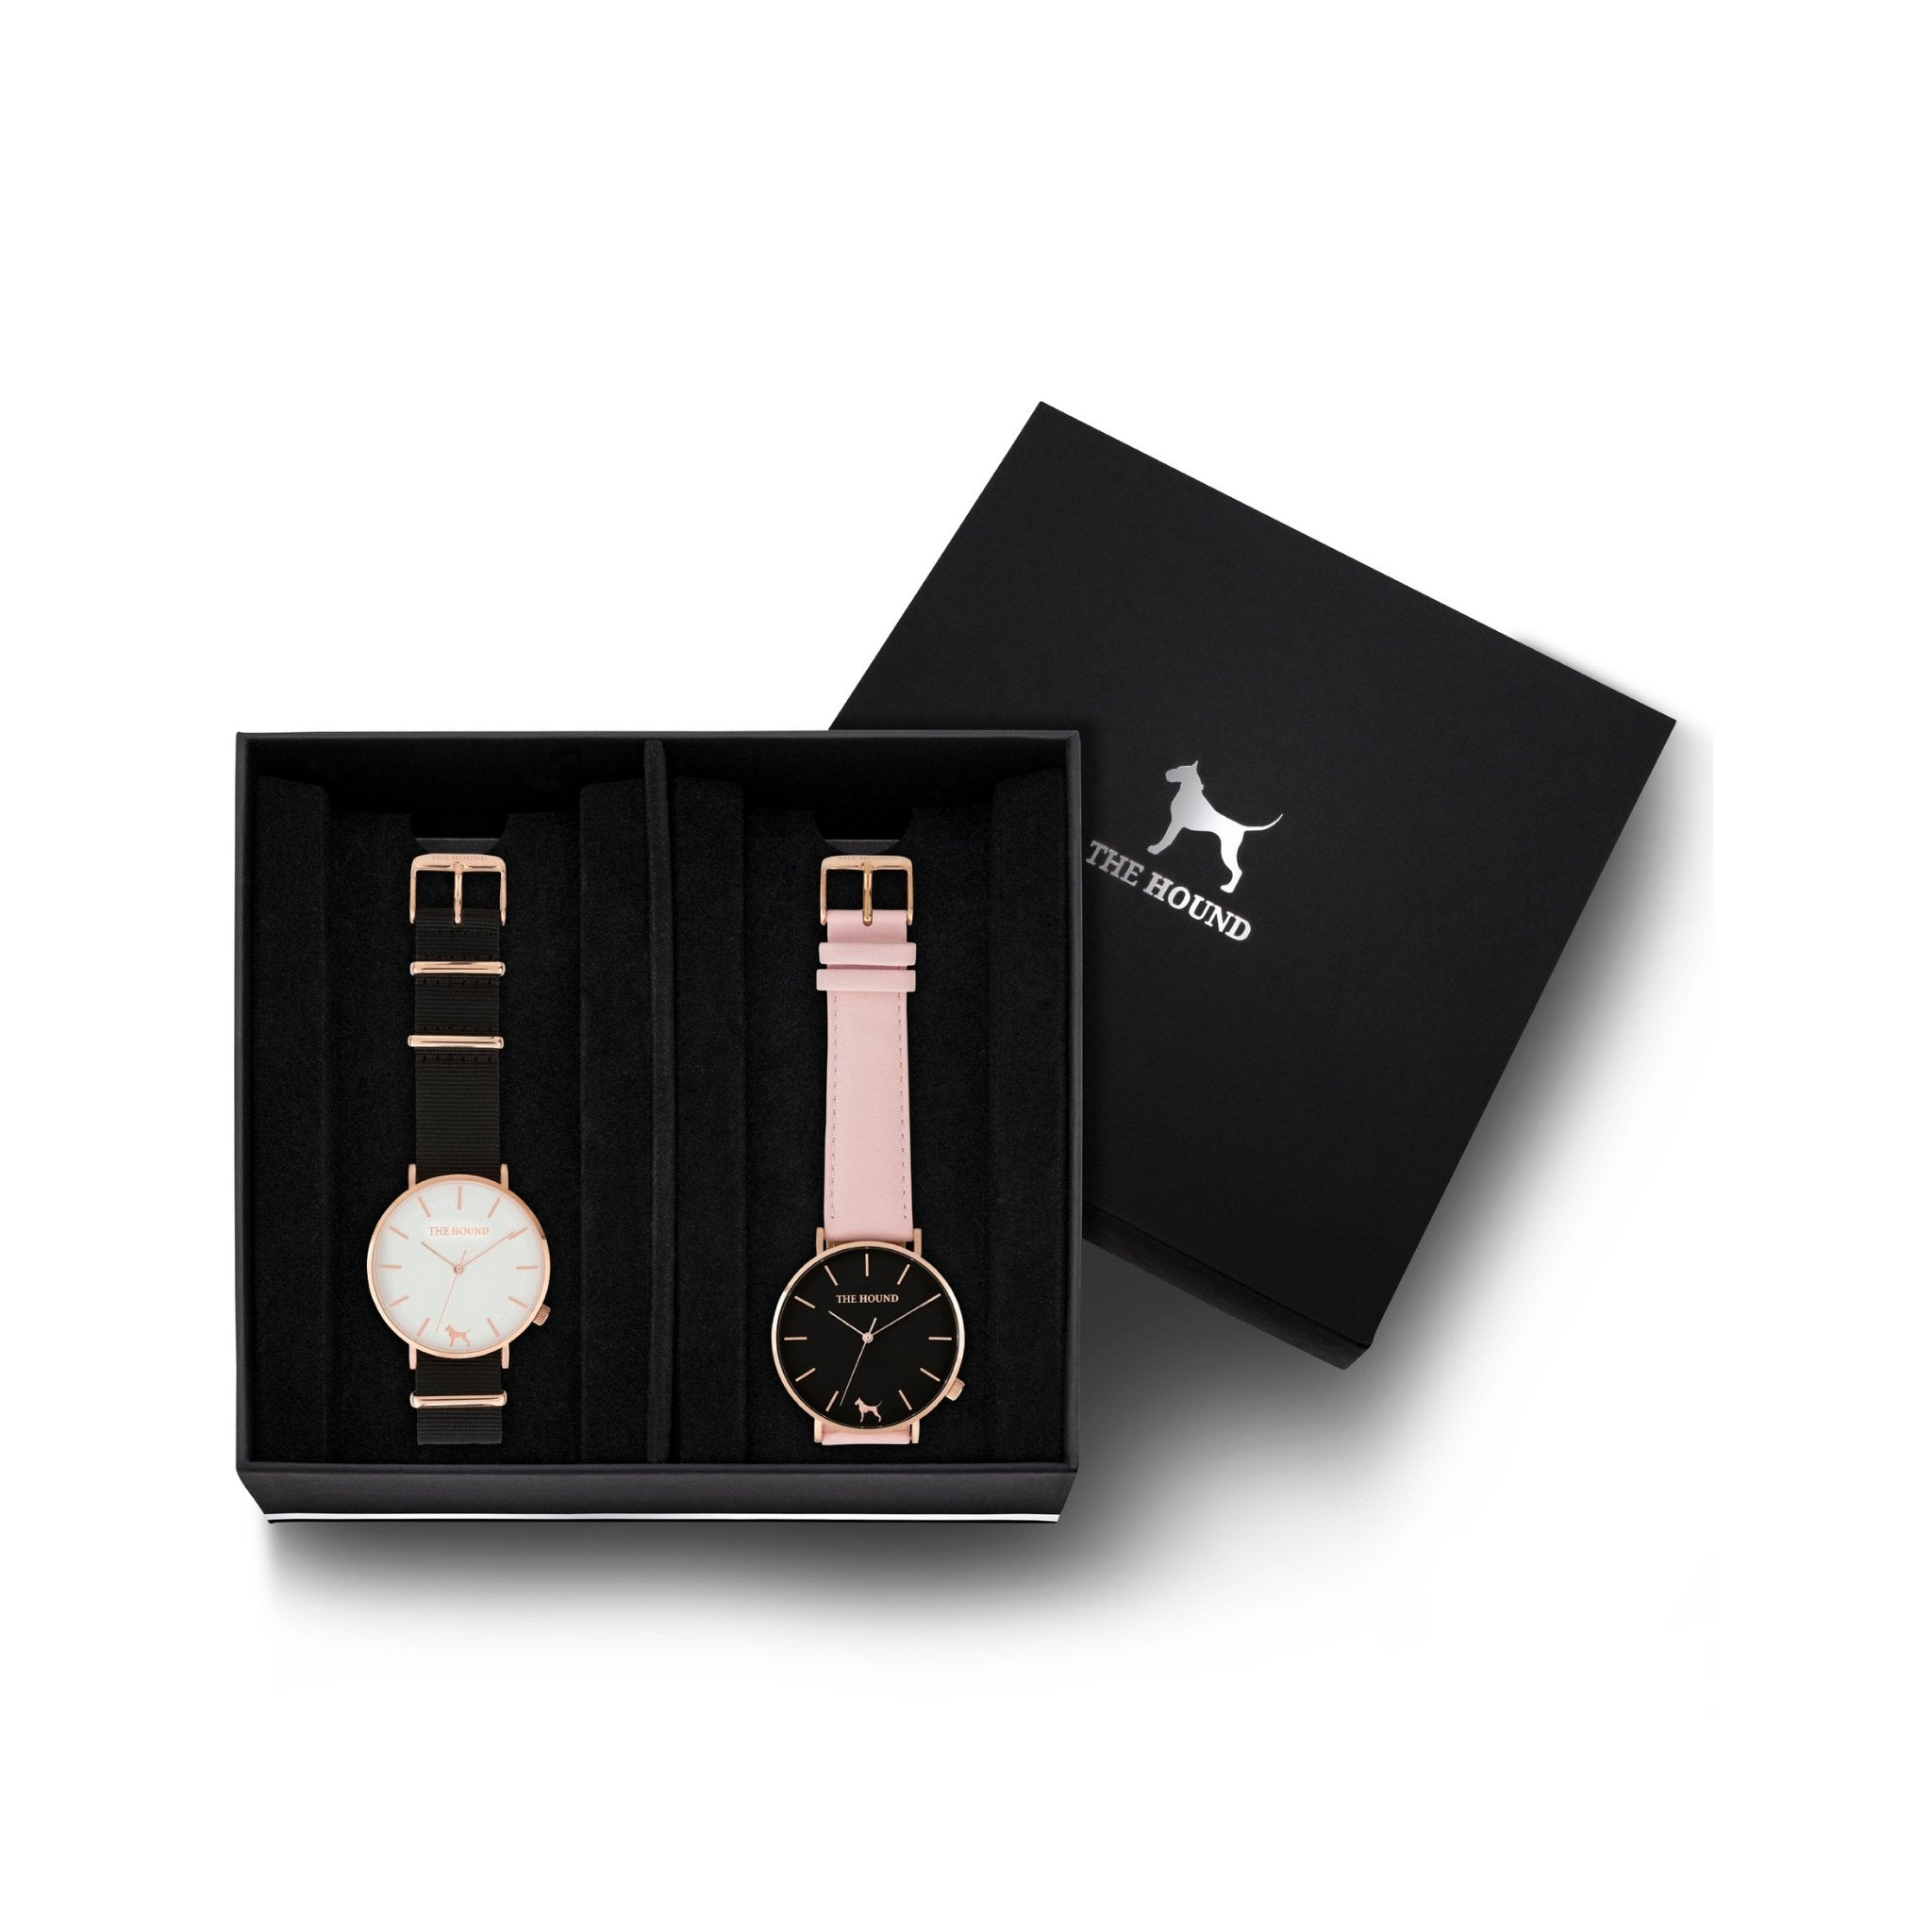 Custom gift set - Rose gold and white watch with black nato band and a rose gold and black watch with stitched blush pink genuine leather band